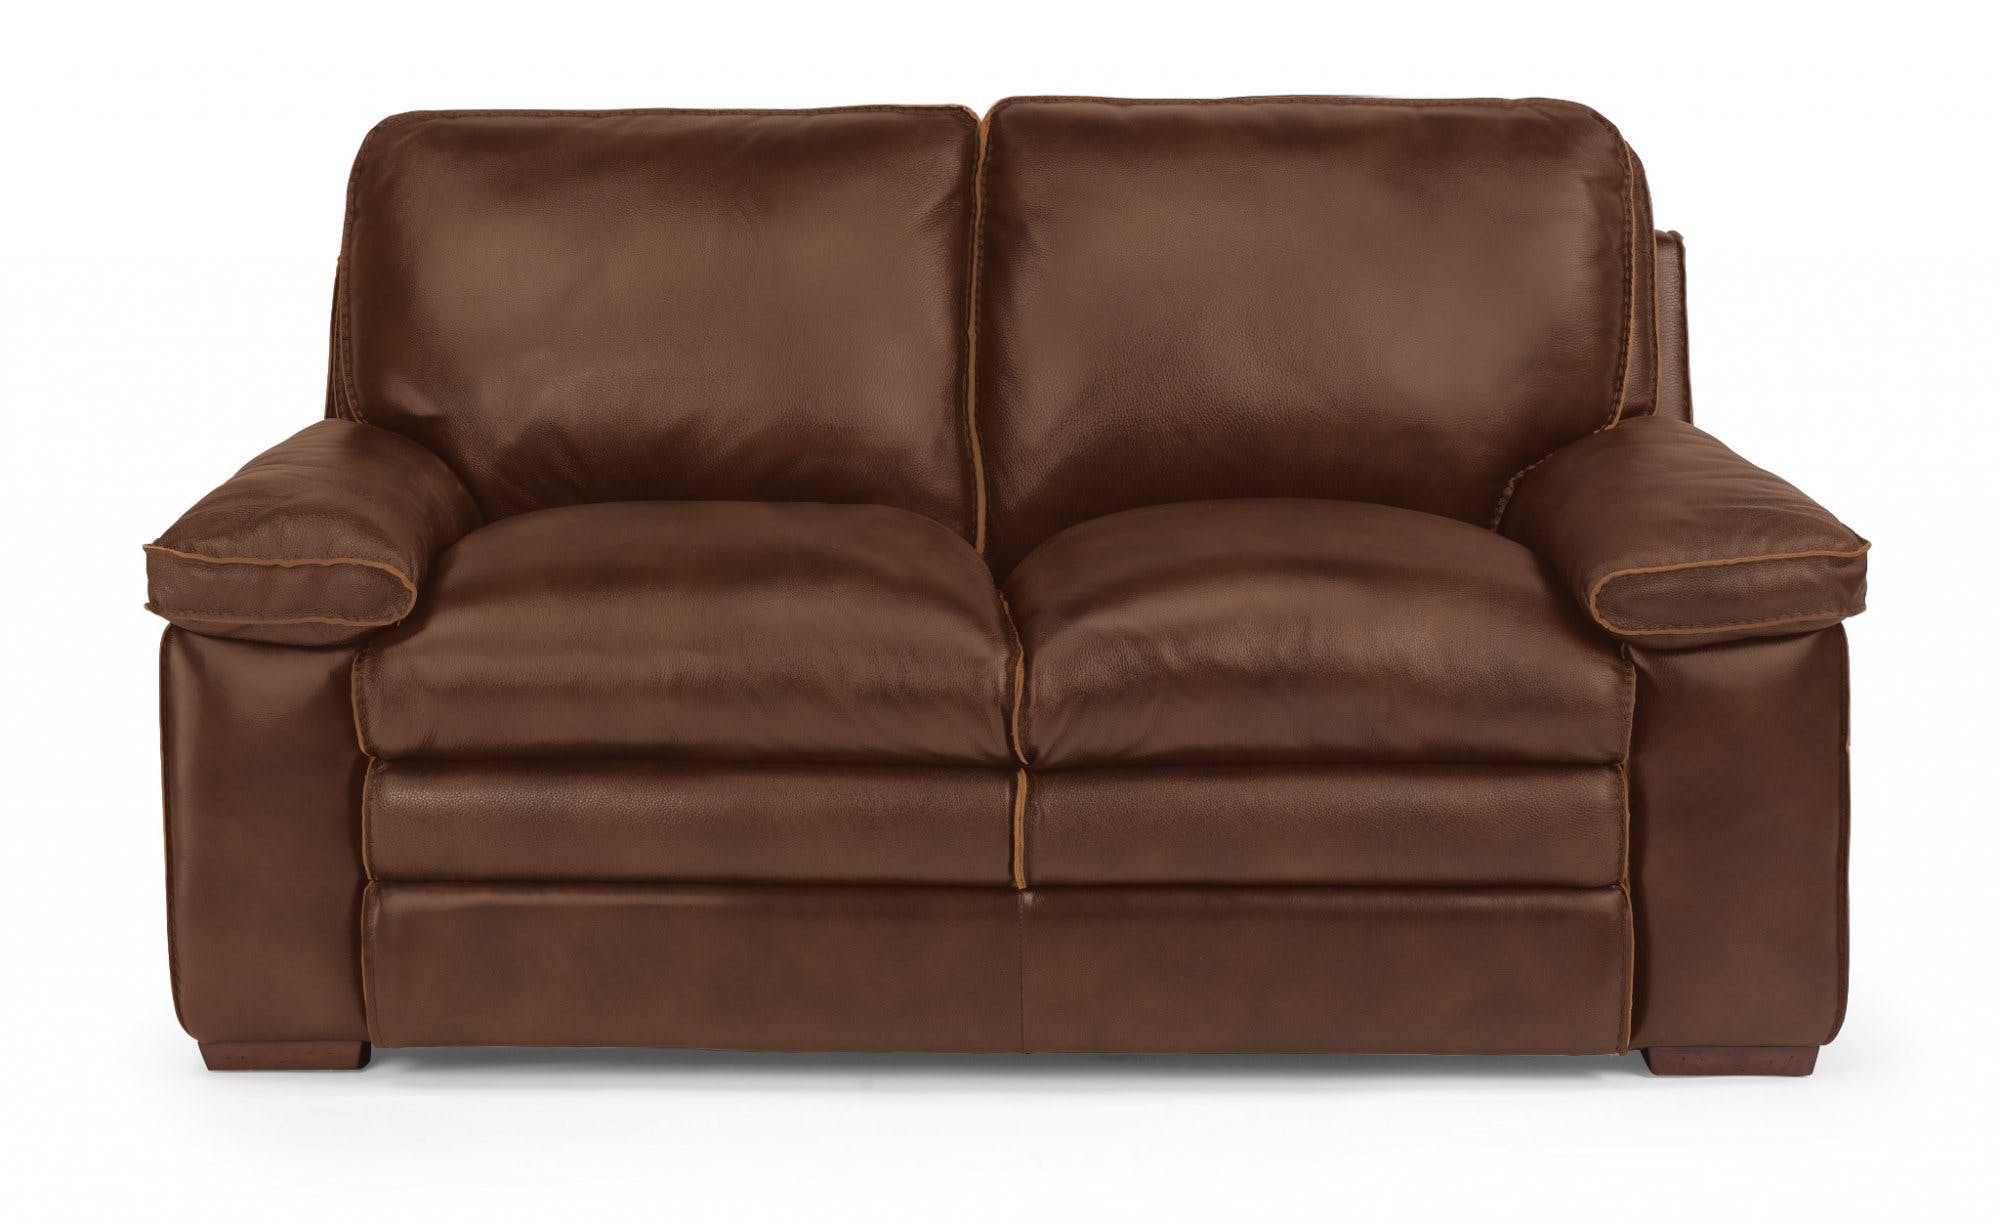 Flexsteel Living Room Leather Loveseat 1774-20 - Bacons Furniture